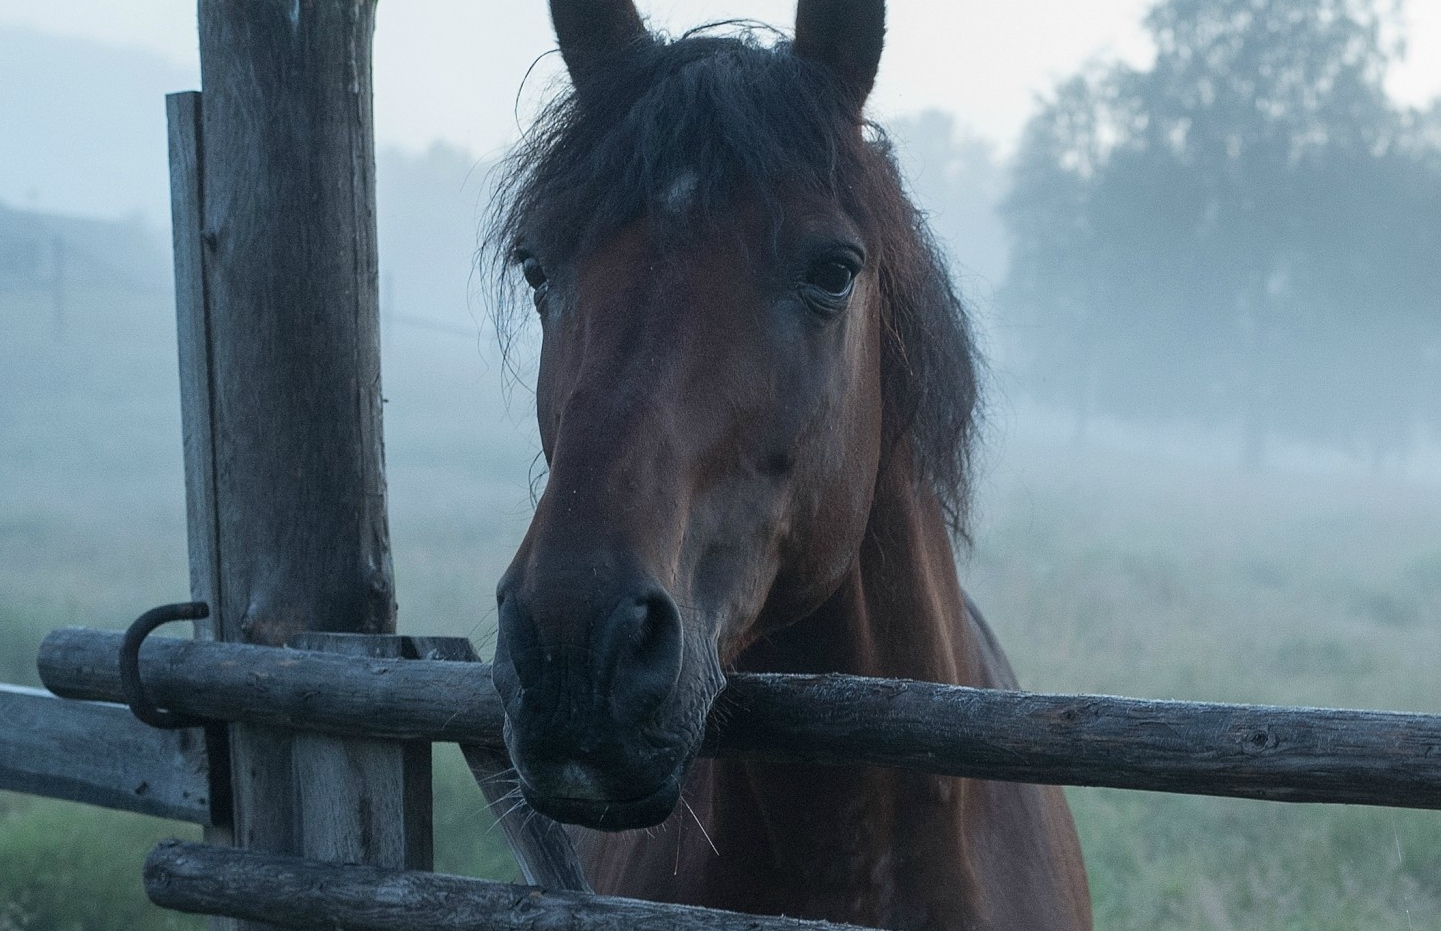 Generic image of horse